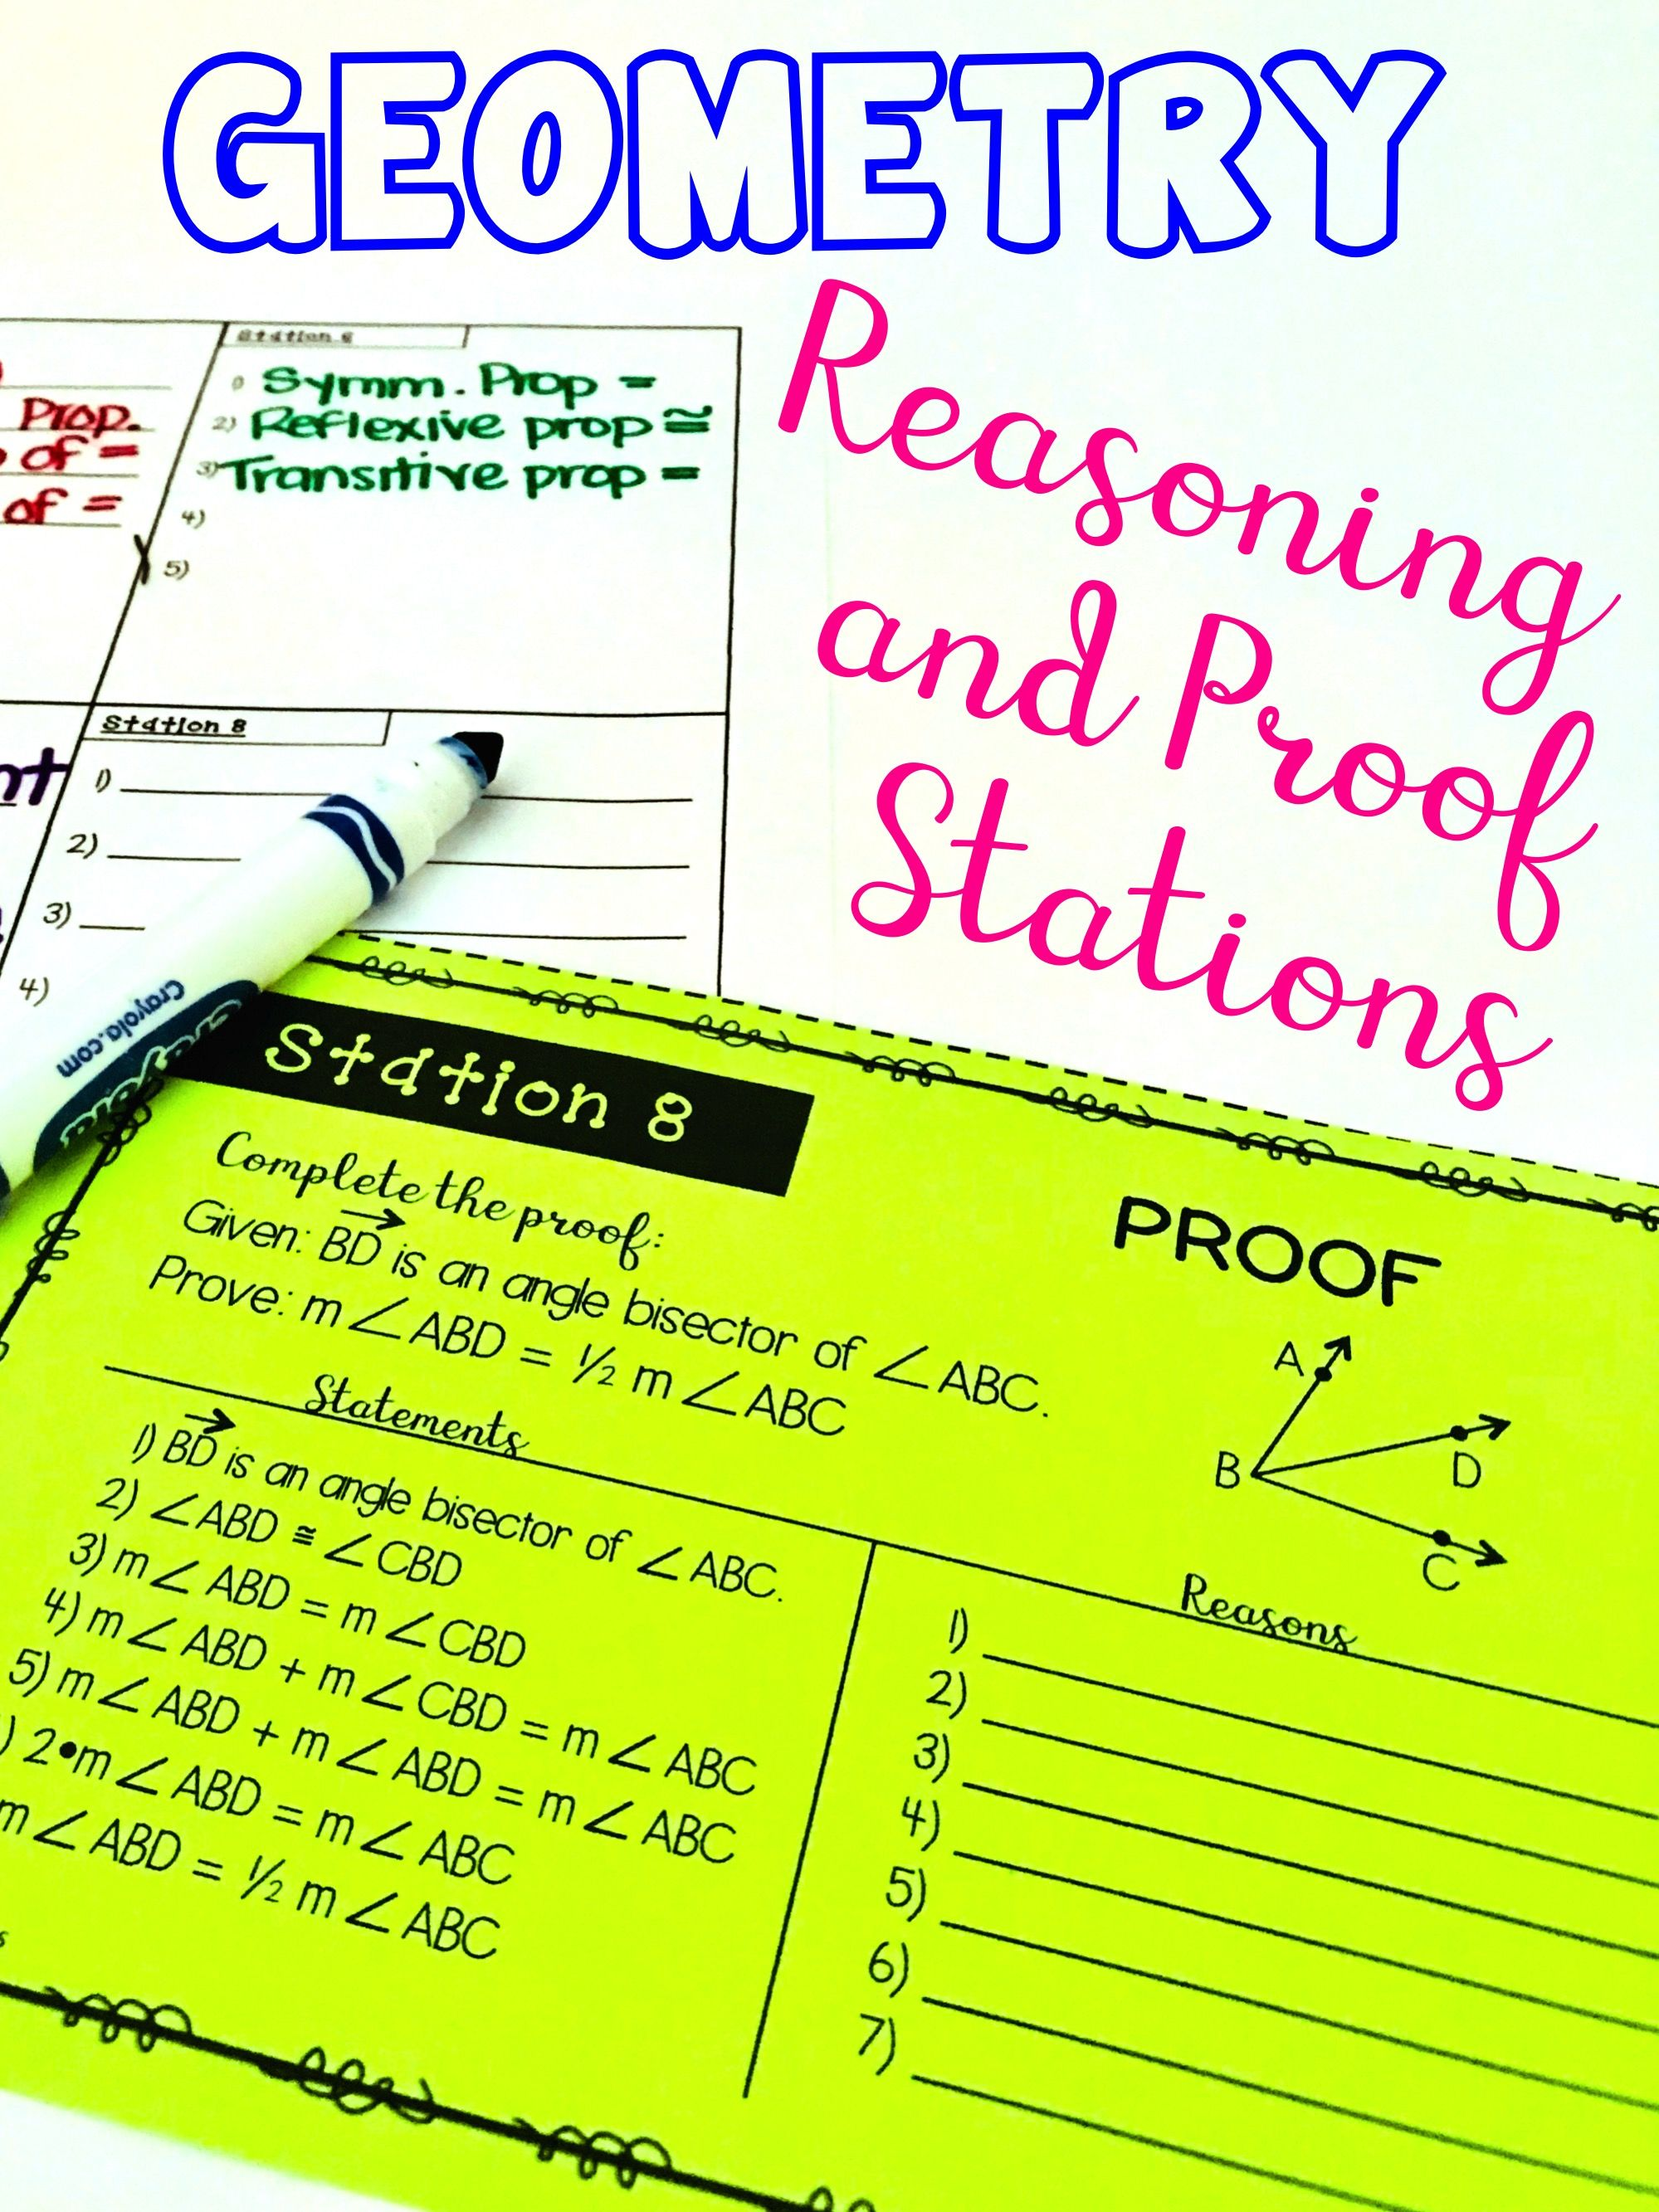 Geometry Proof and Reasoning - Stations Activity | Geometry ...